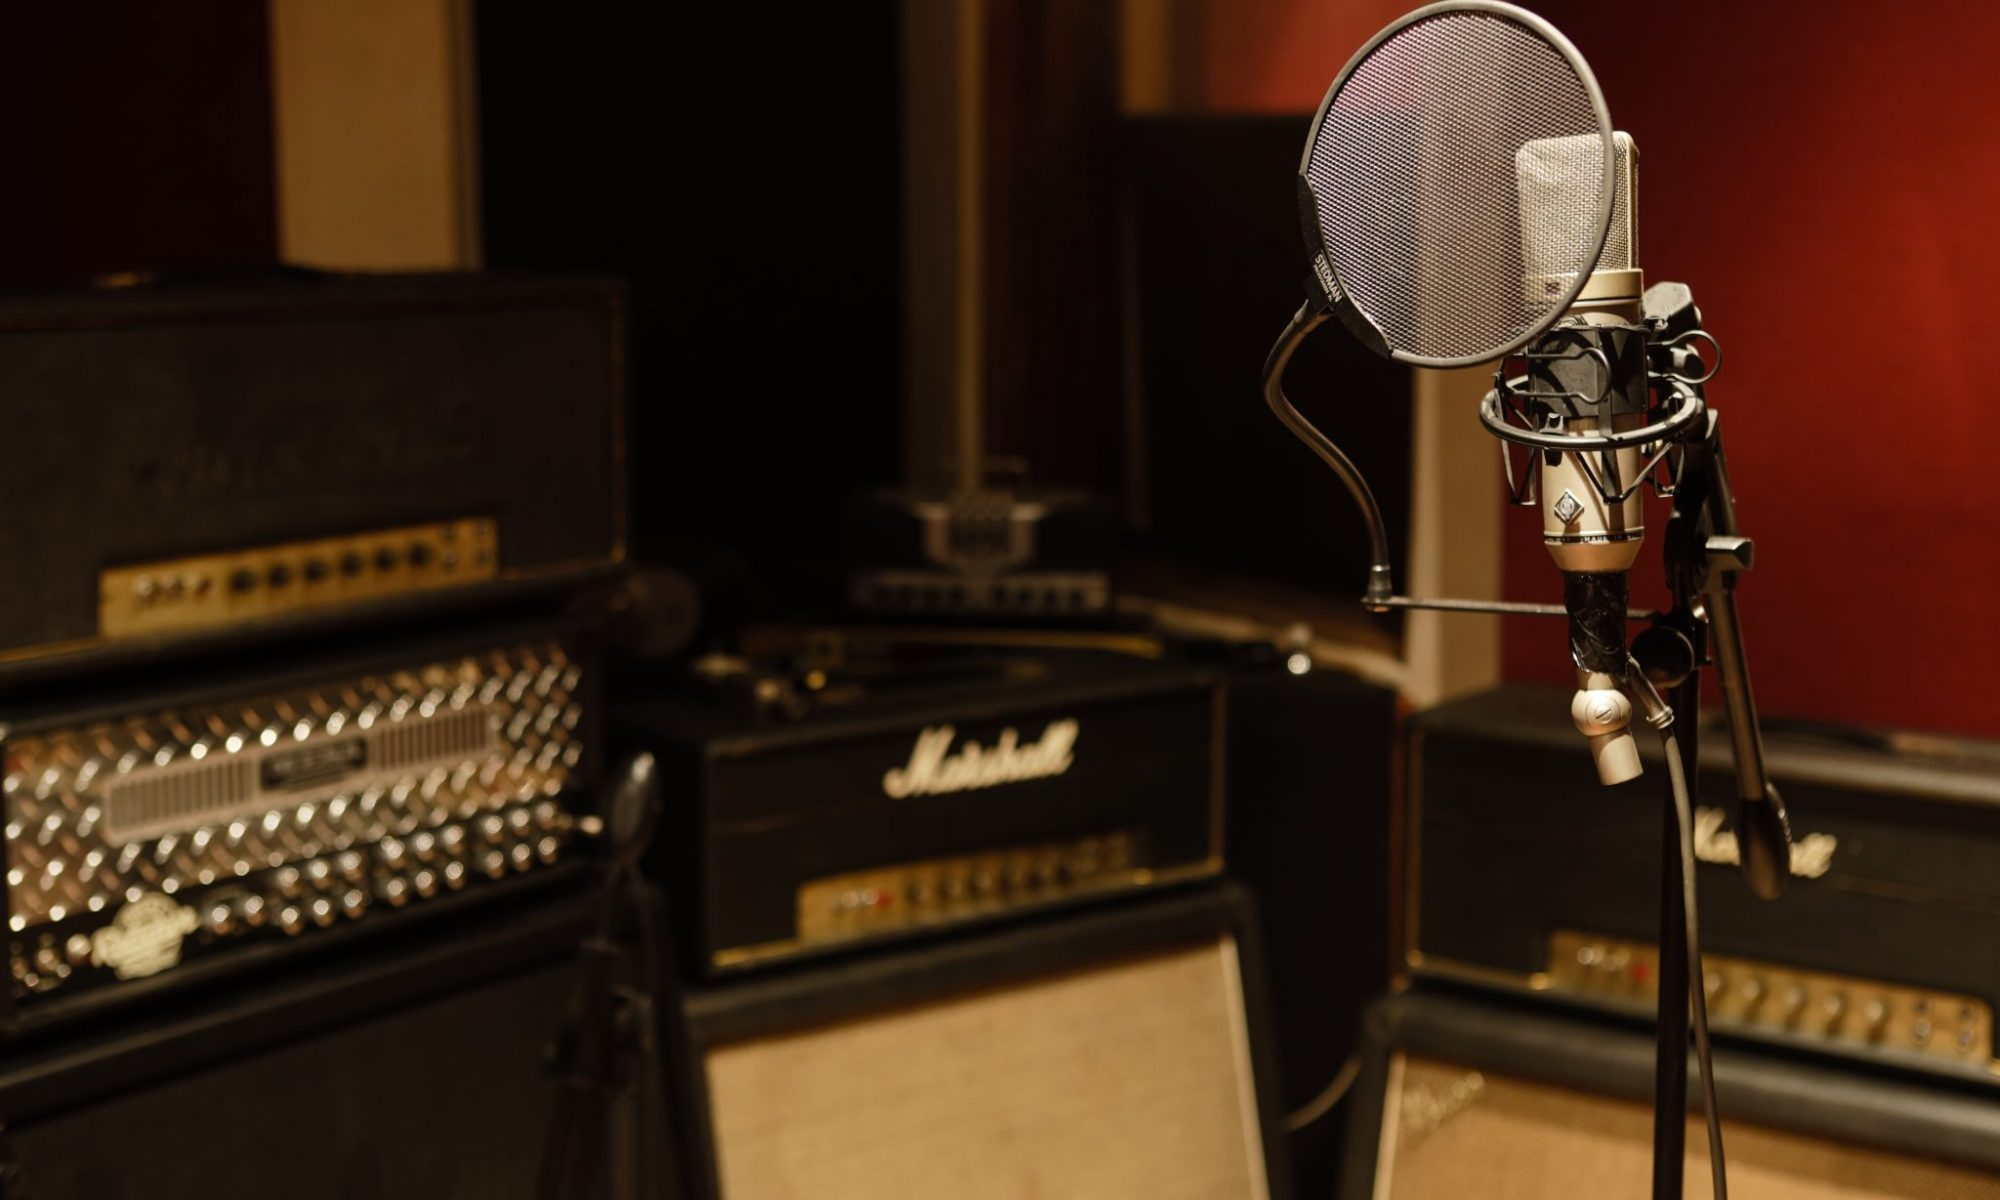 Photo taken by Andy Lund of Neumann U87 microphone with guitar amplifiers in background